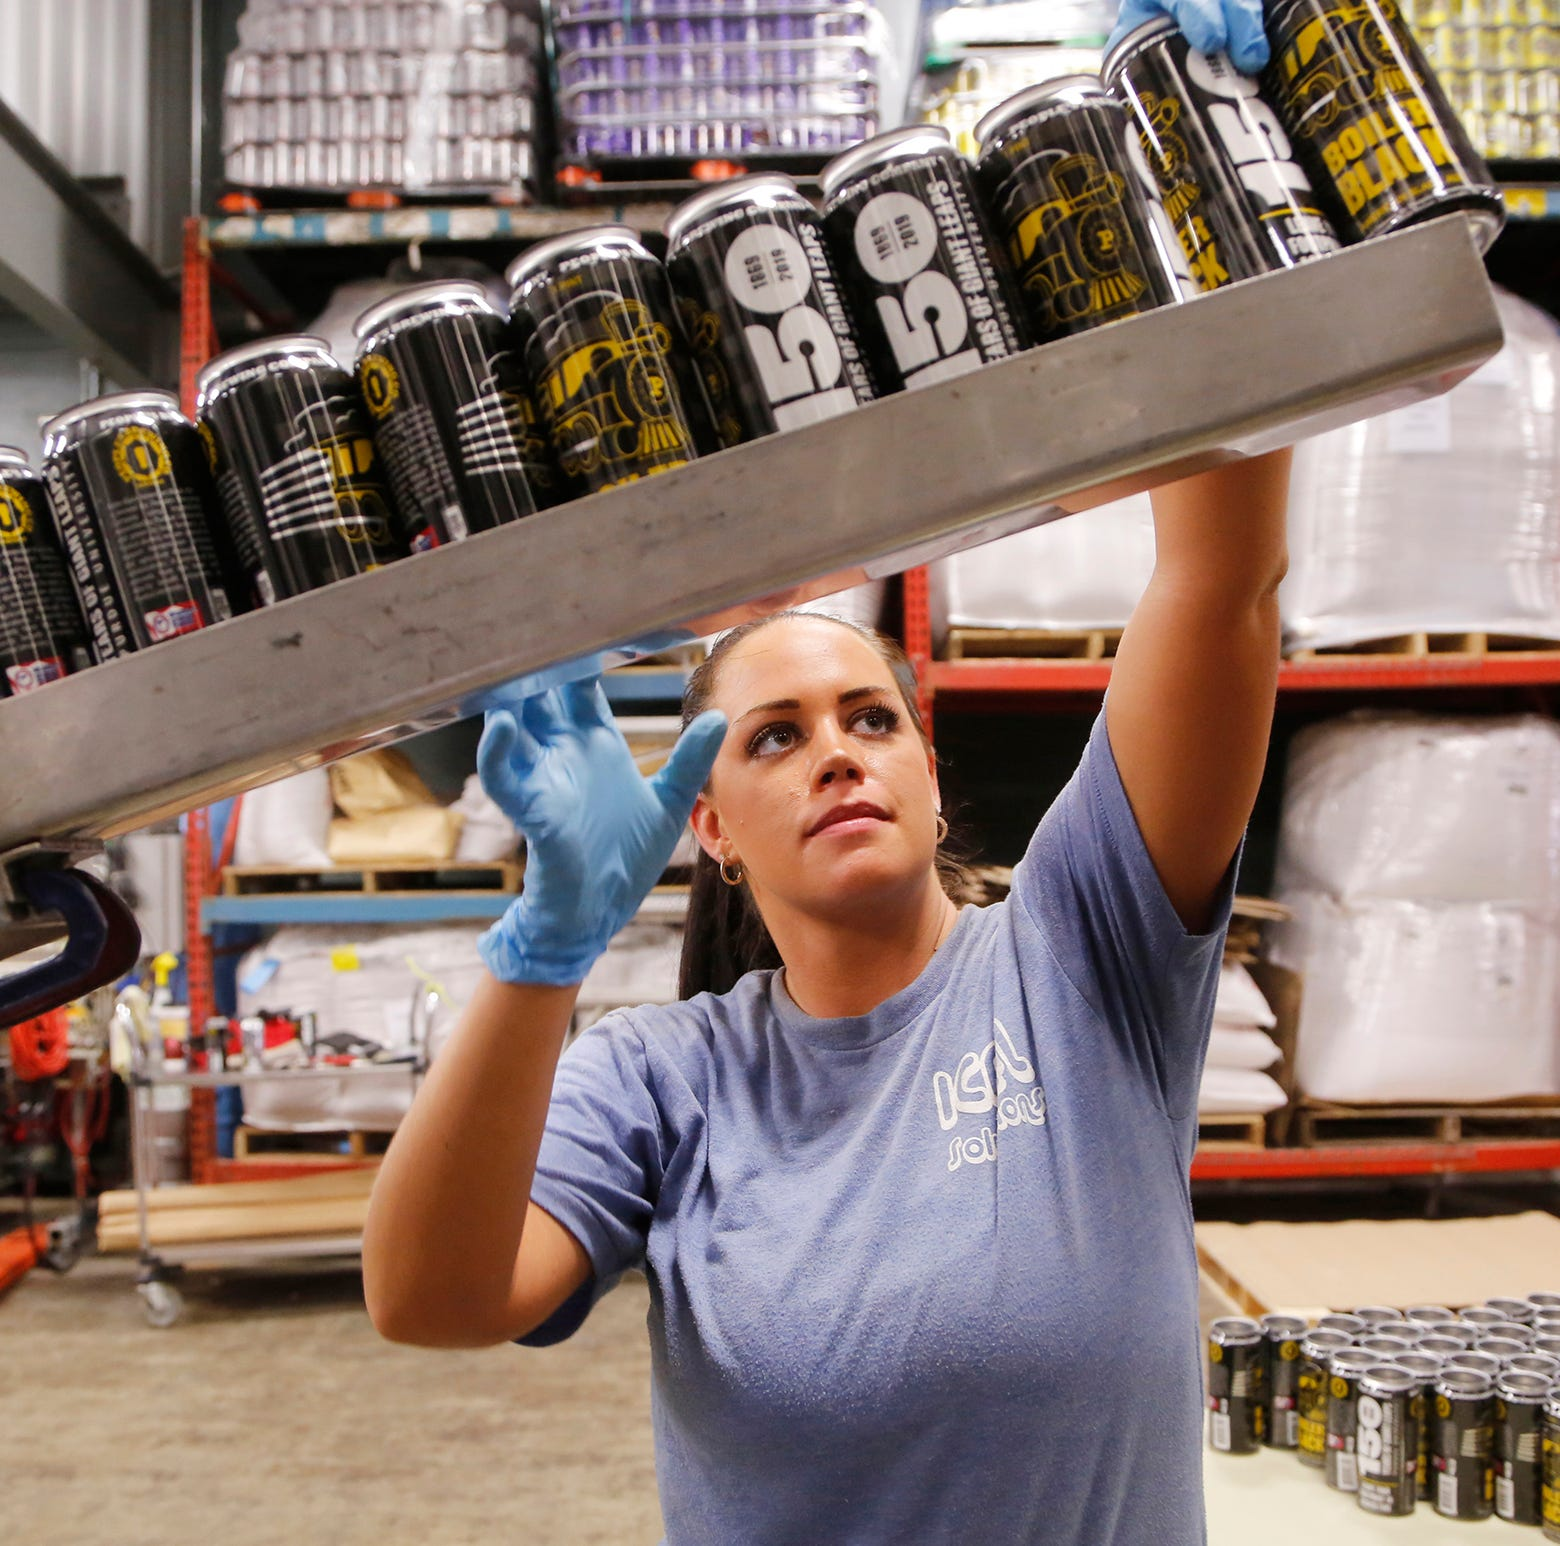 People's rolls out Boiler Black, Purdue's second signature beer